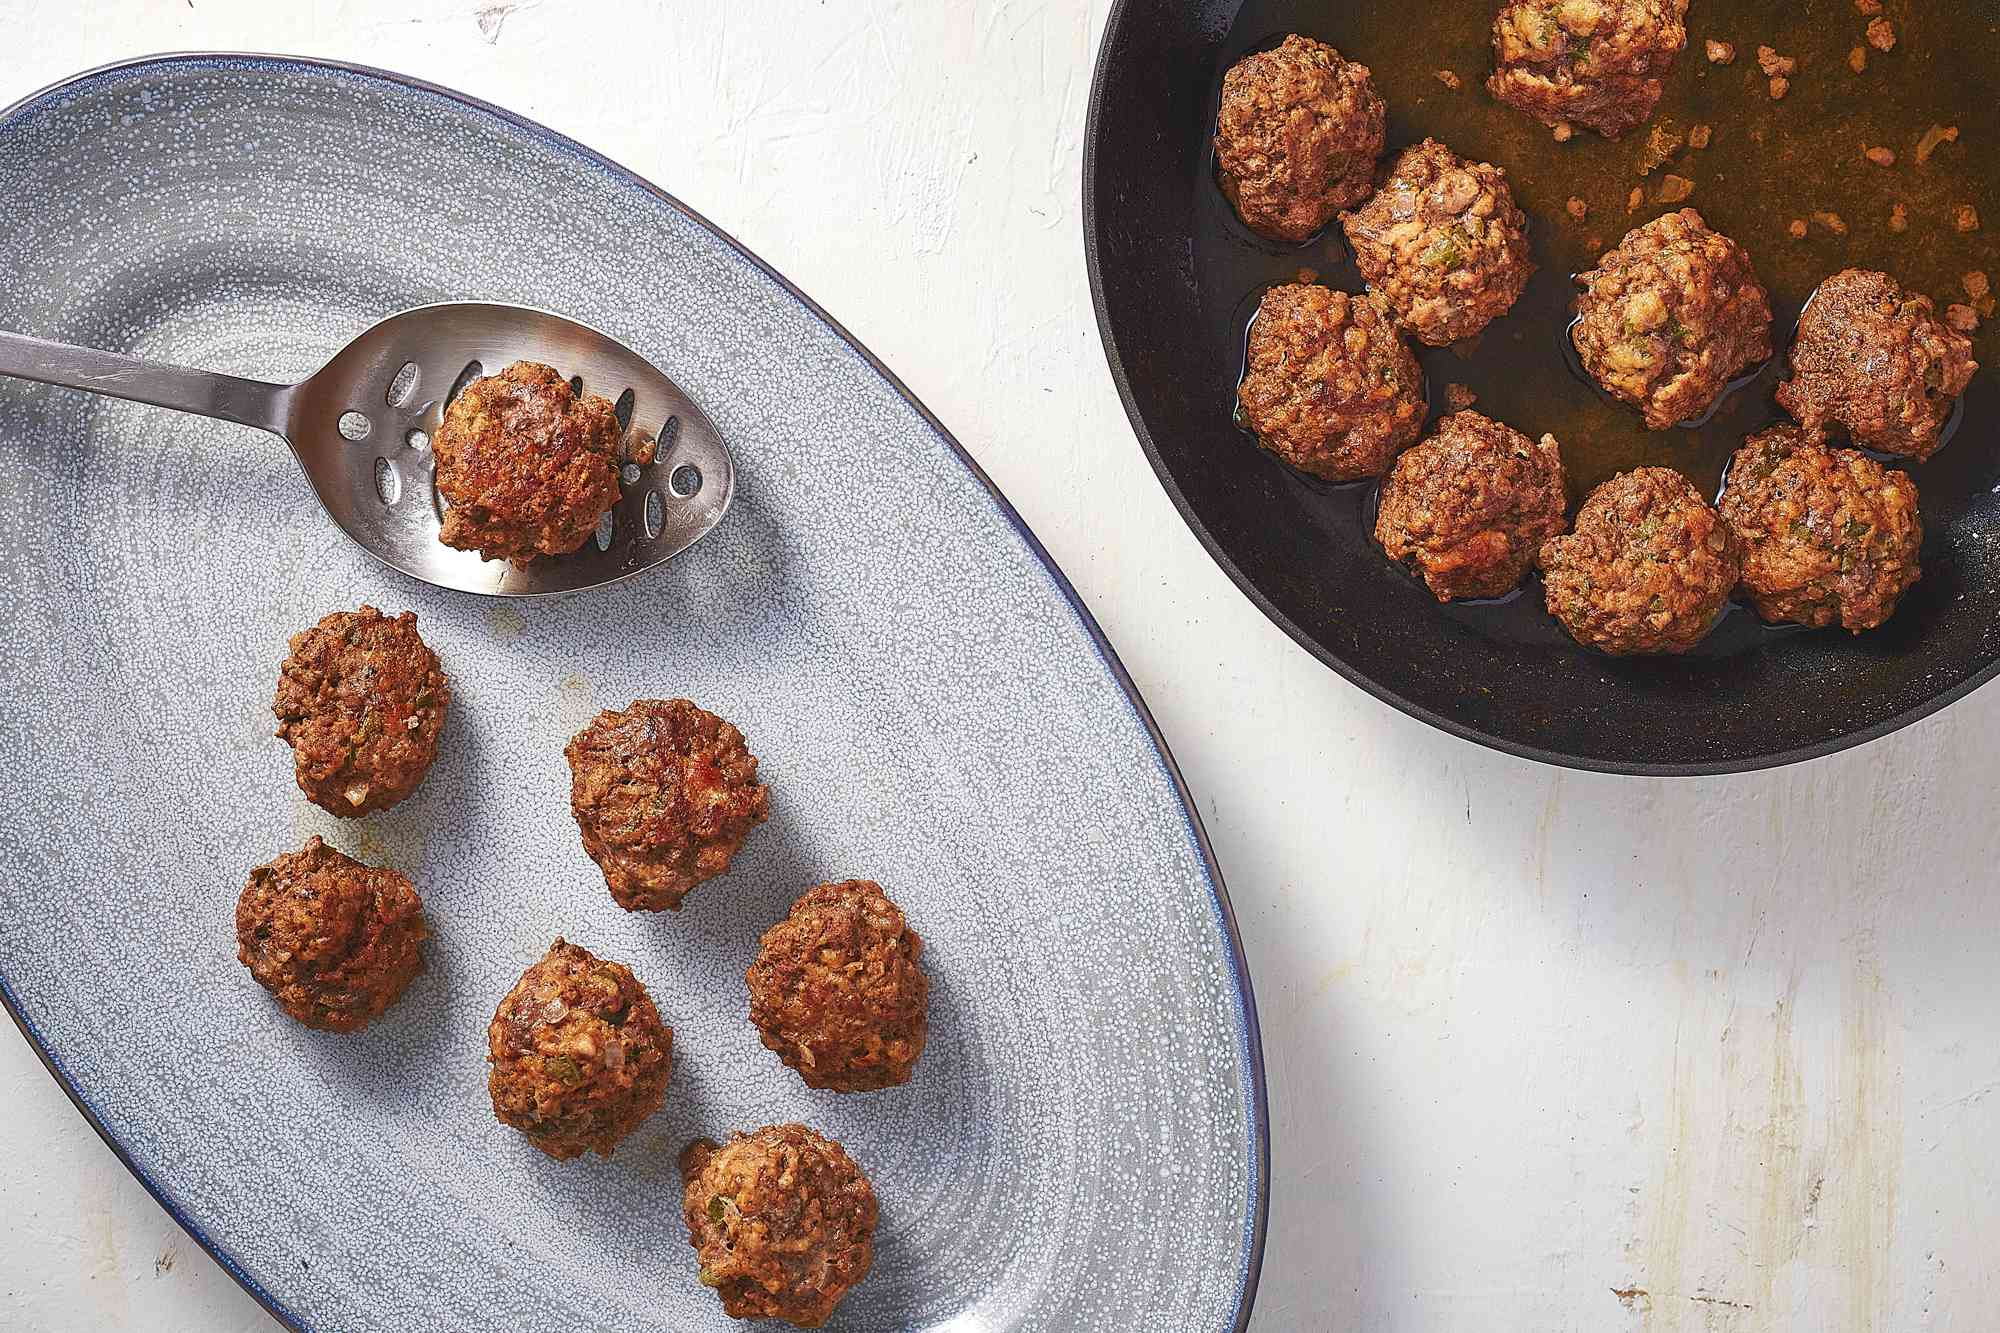 meatballs removed from skillet with slotted spoon